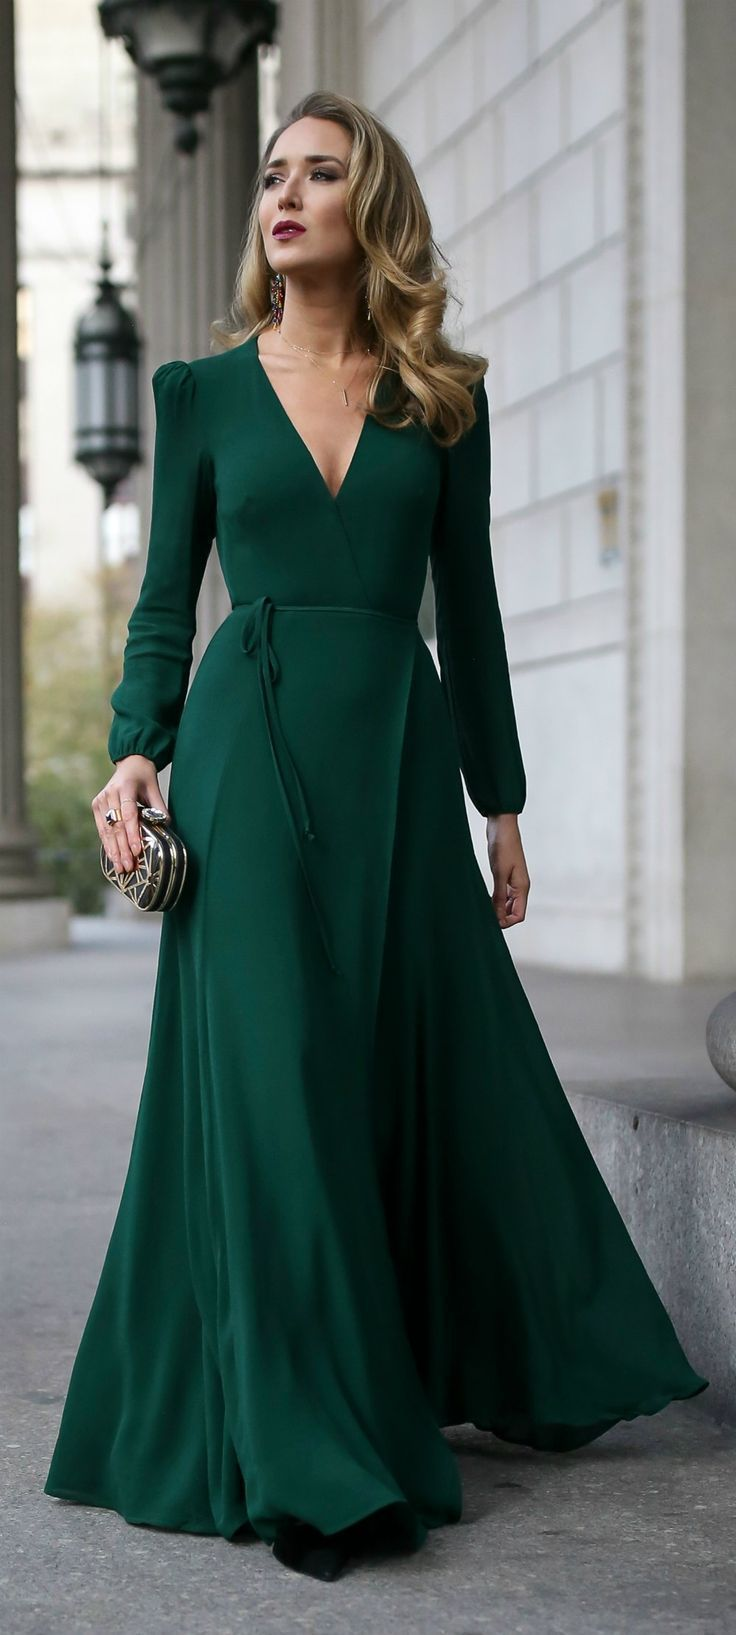 4c0f1008b8c9 Click for outfit details!      Emerald green long-sleeve floor ...